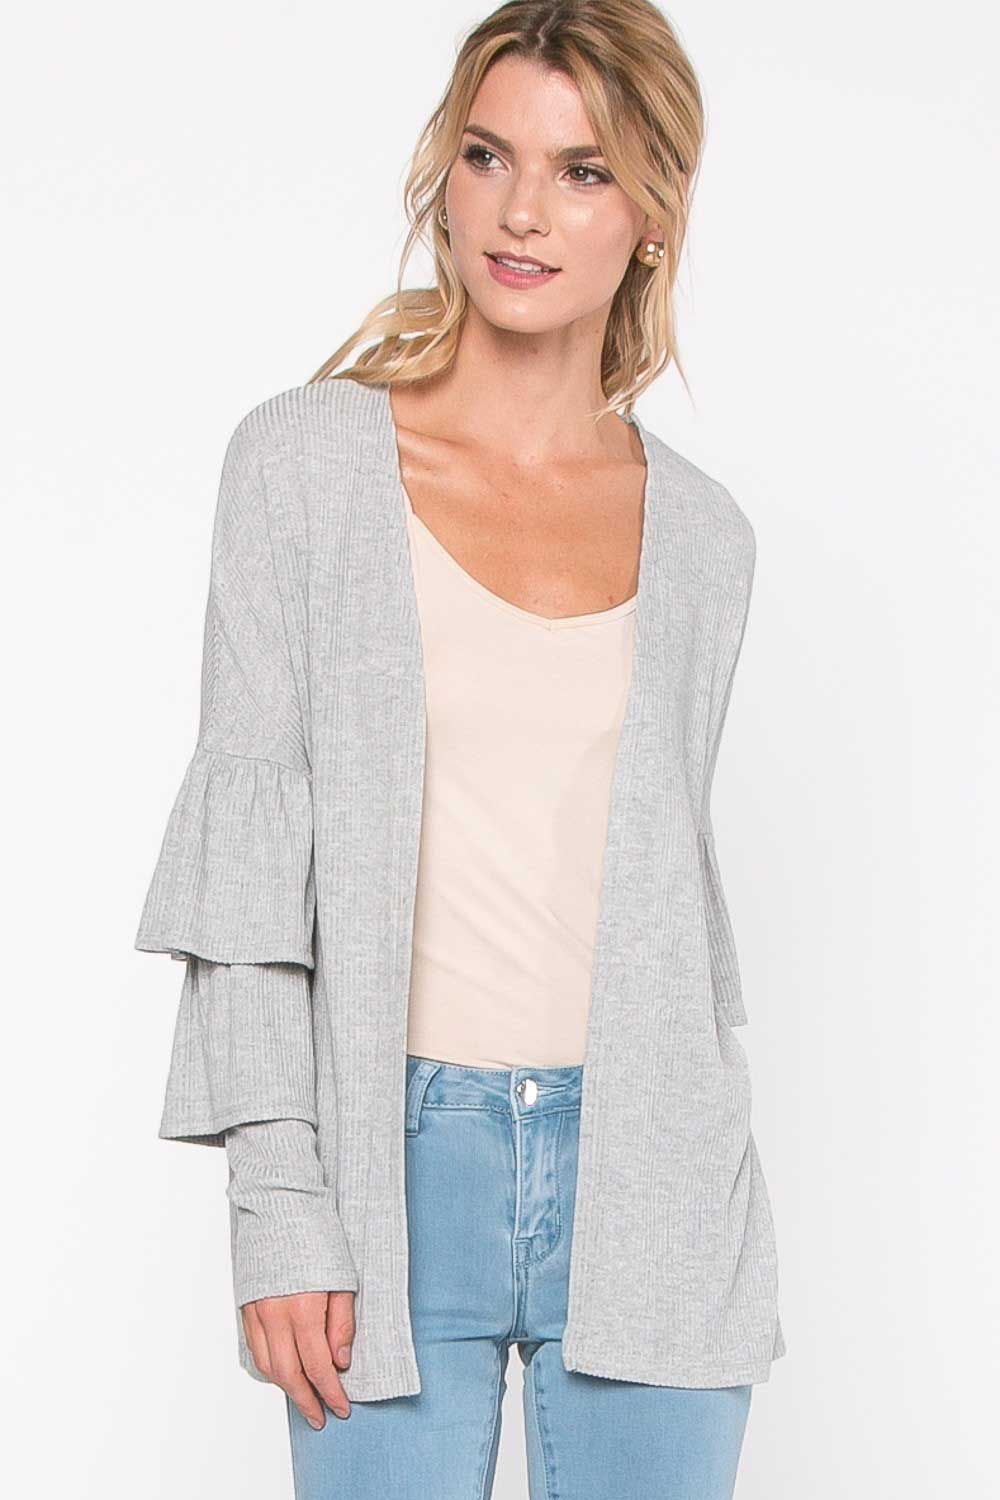 Everly Clothing Ribbed Cardigan with Ruffle Sleeves in Light Grey T12109